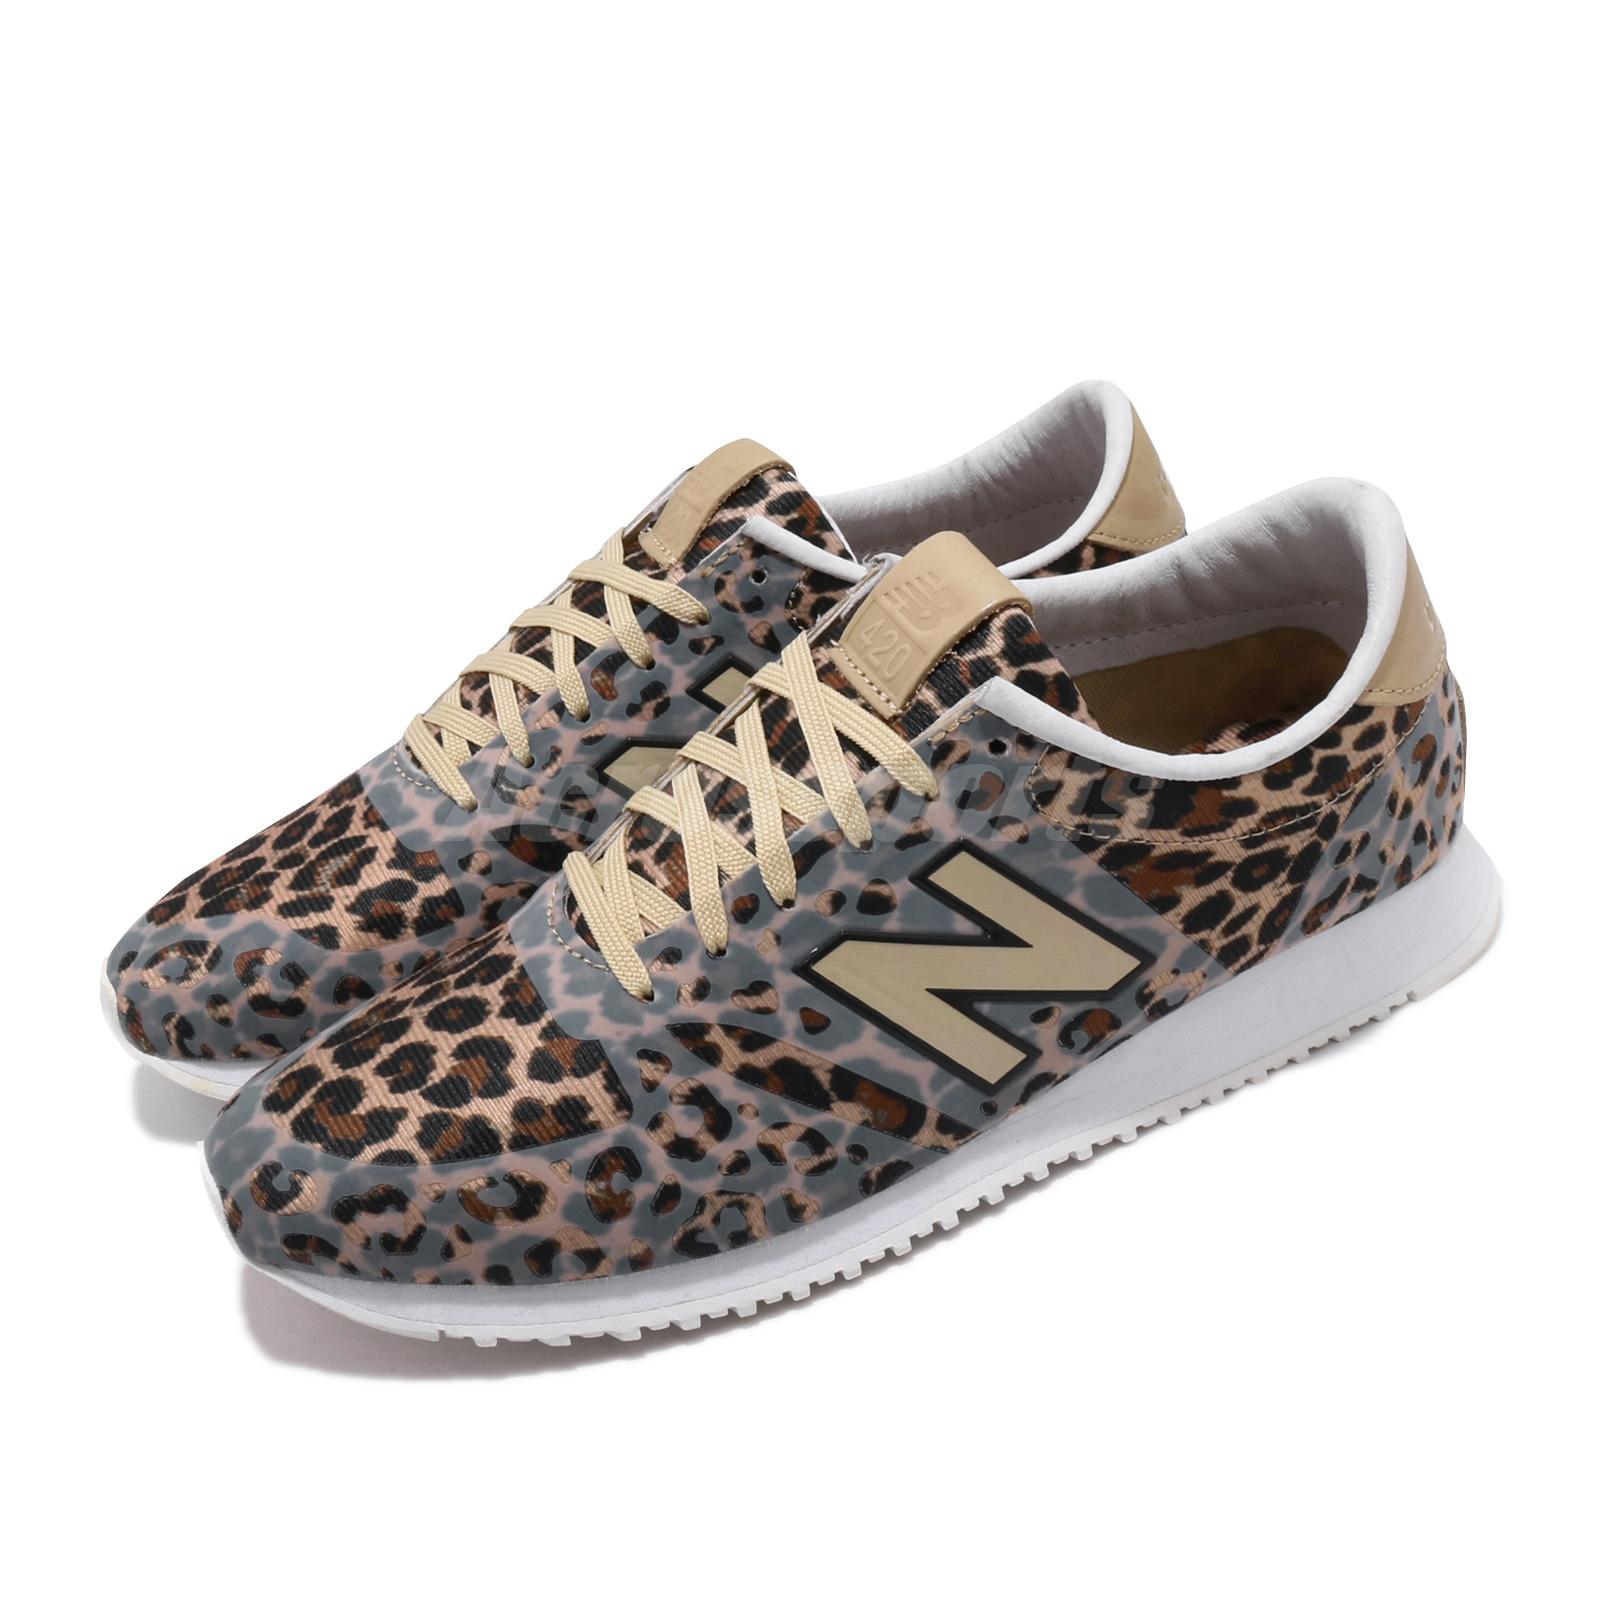 Details about New Balance WL420 Leopard Print Brown Women Running Shoes  Sneakers WL420DFL B